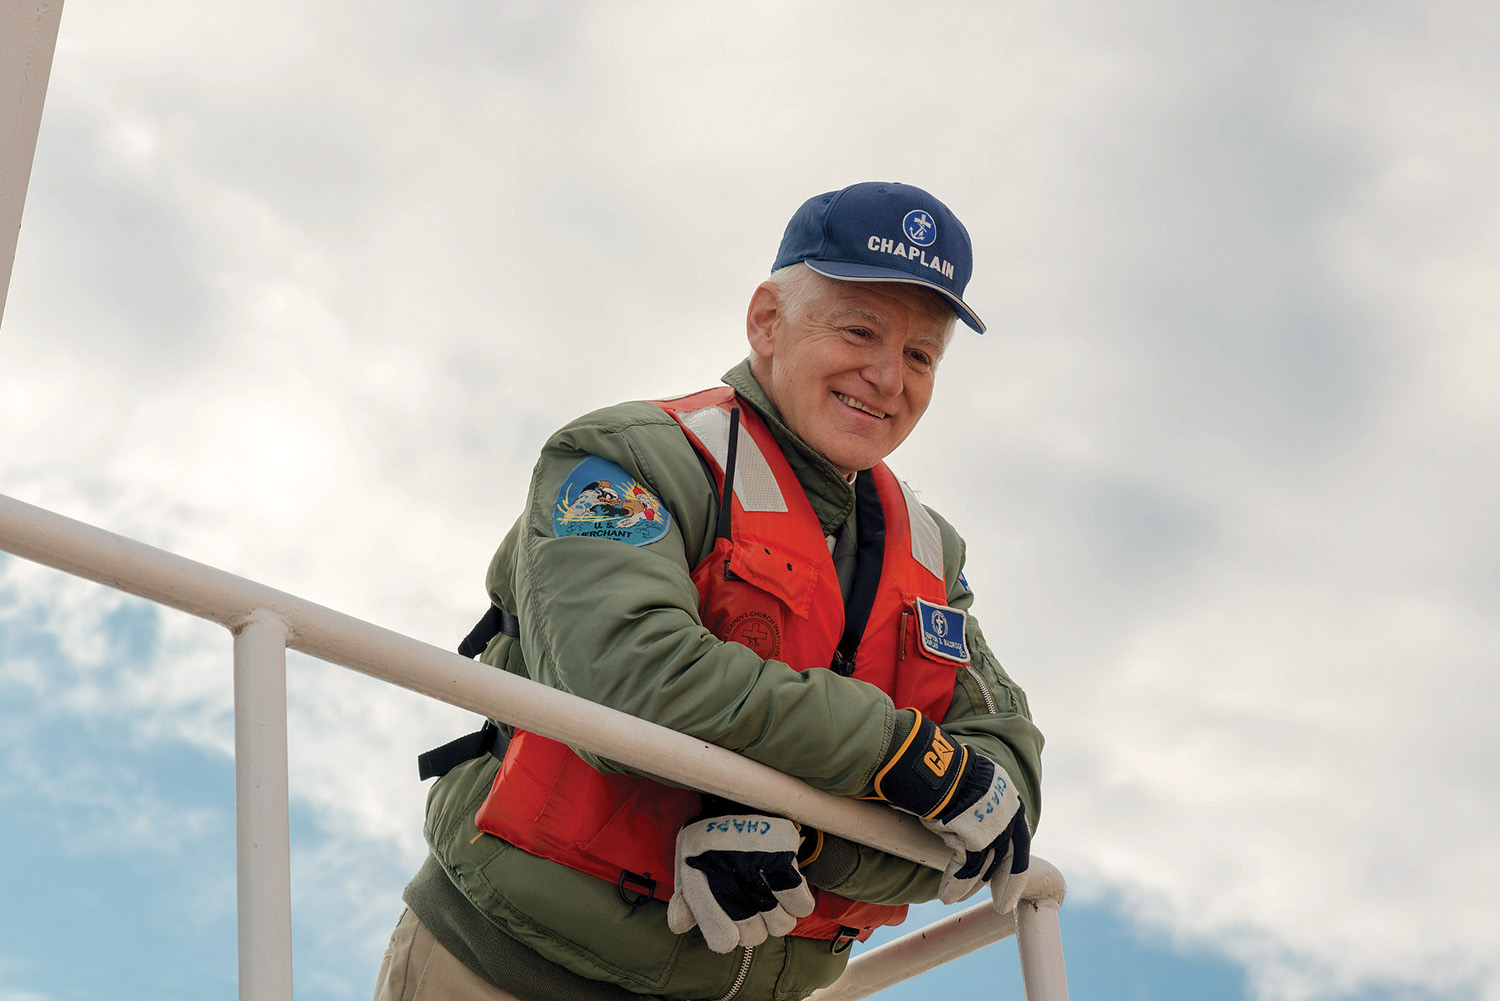 Chaplain Kempton Baldridge has been promoted to senior river chaplain for the Seamen's Church Institute.